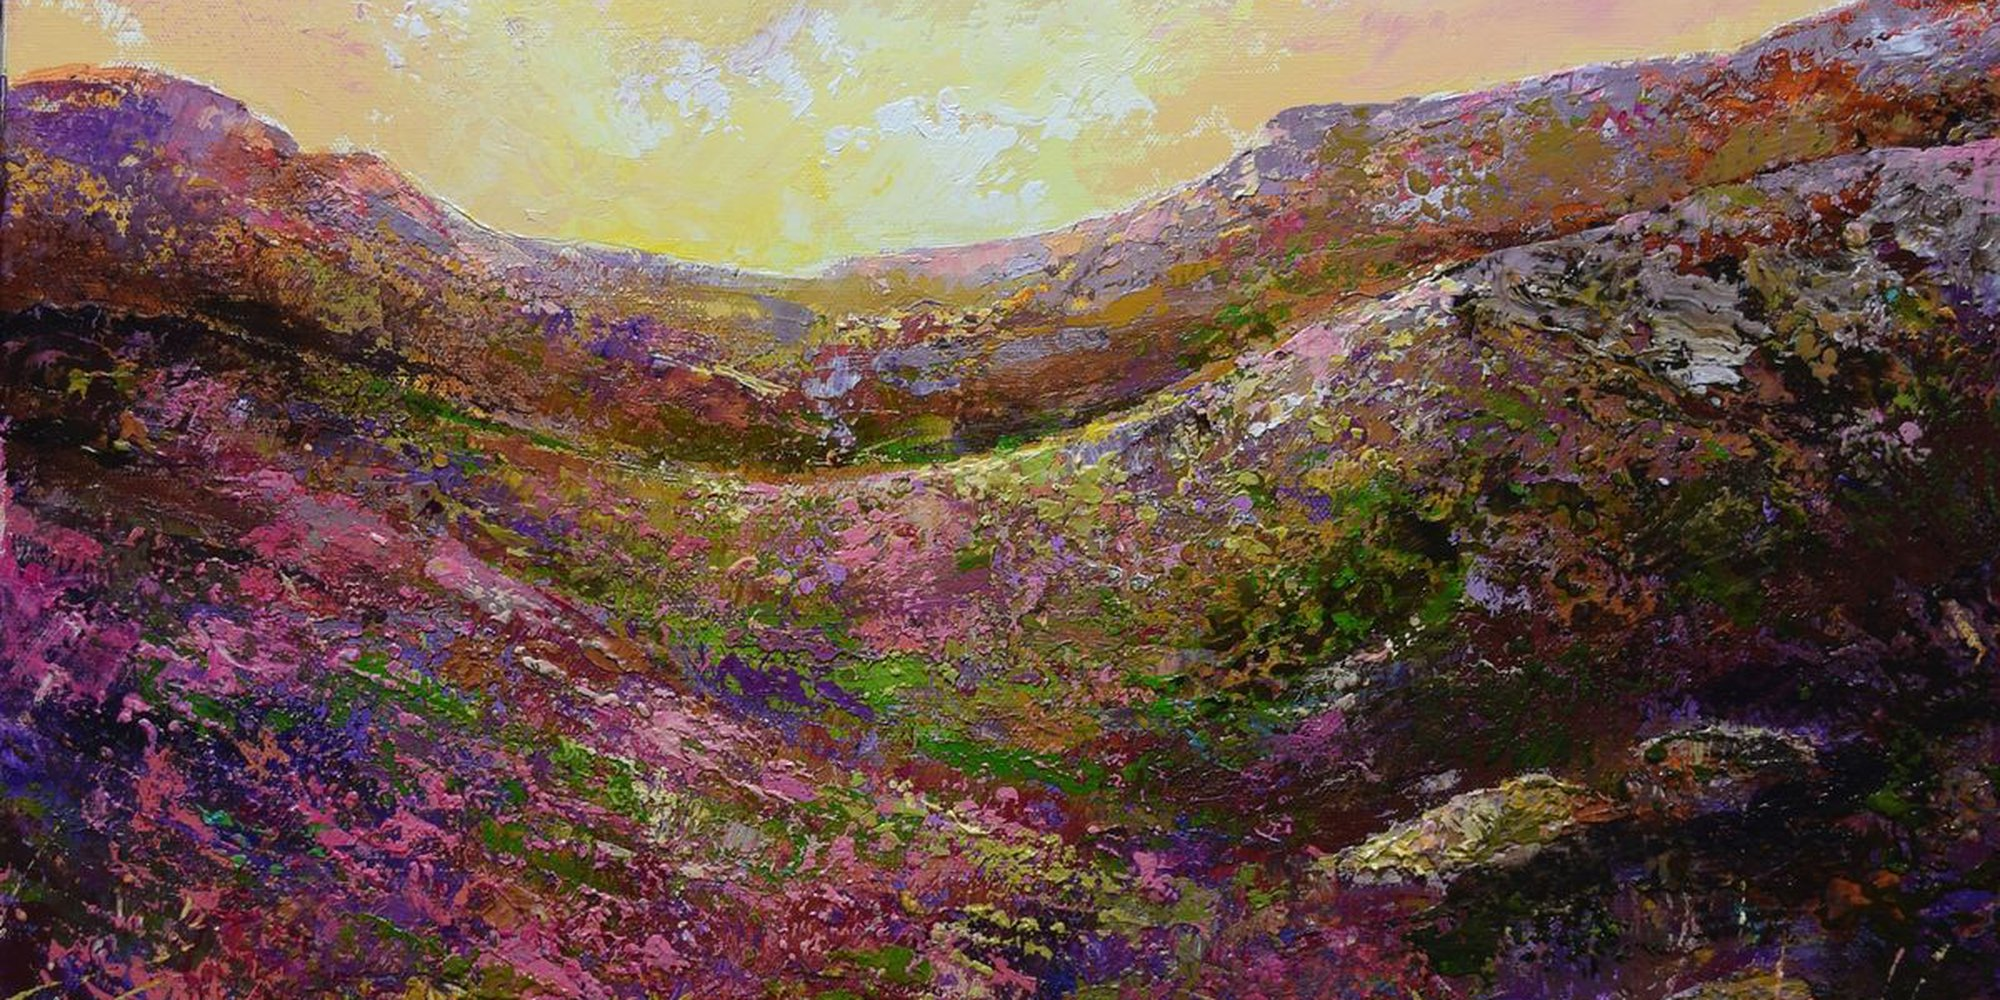 """Art of the Day: """"A View From The Ridge, 2017"""" by Colette Baumback"""